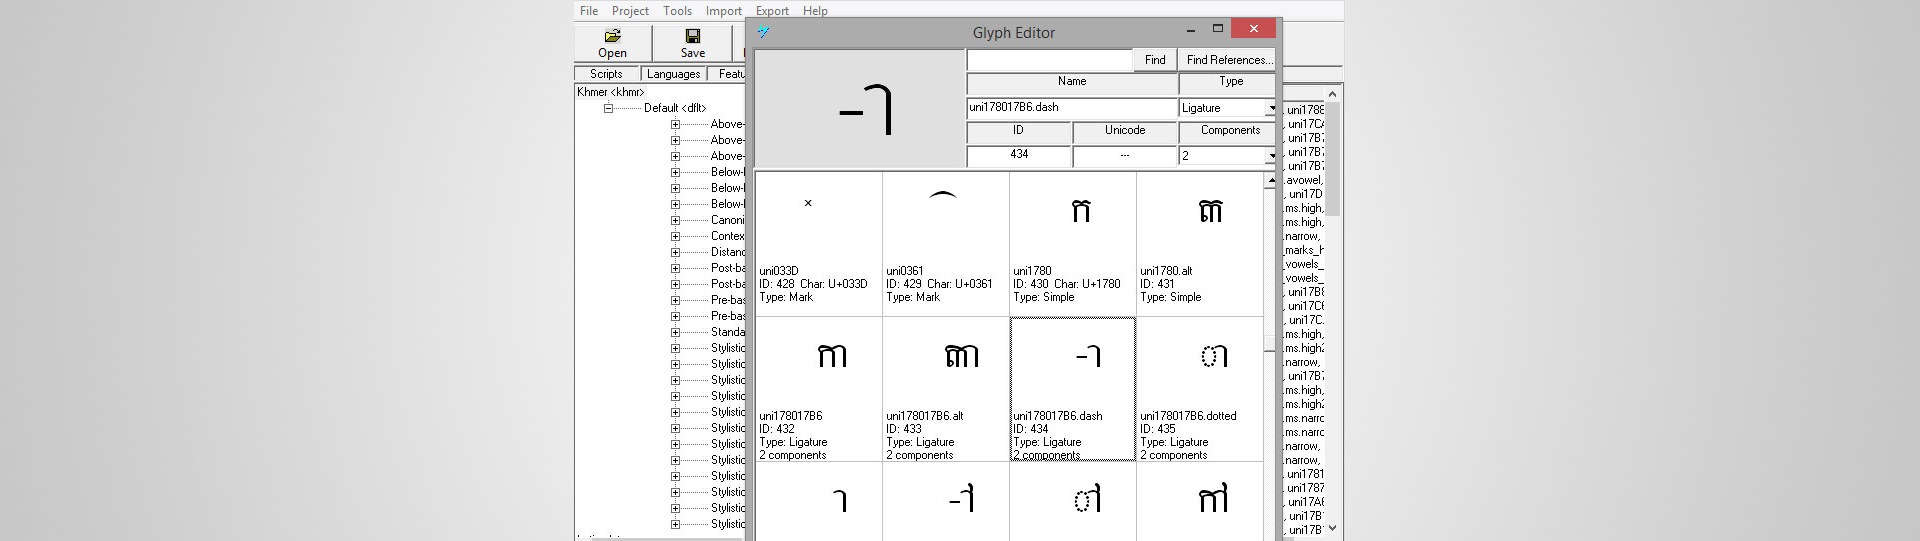 How to Create a New Khmer Unicode Font - Society for Better Books in